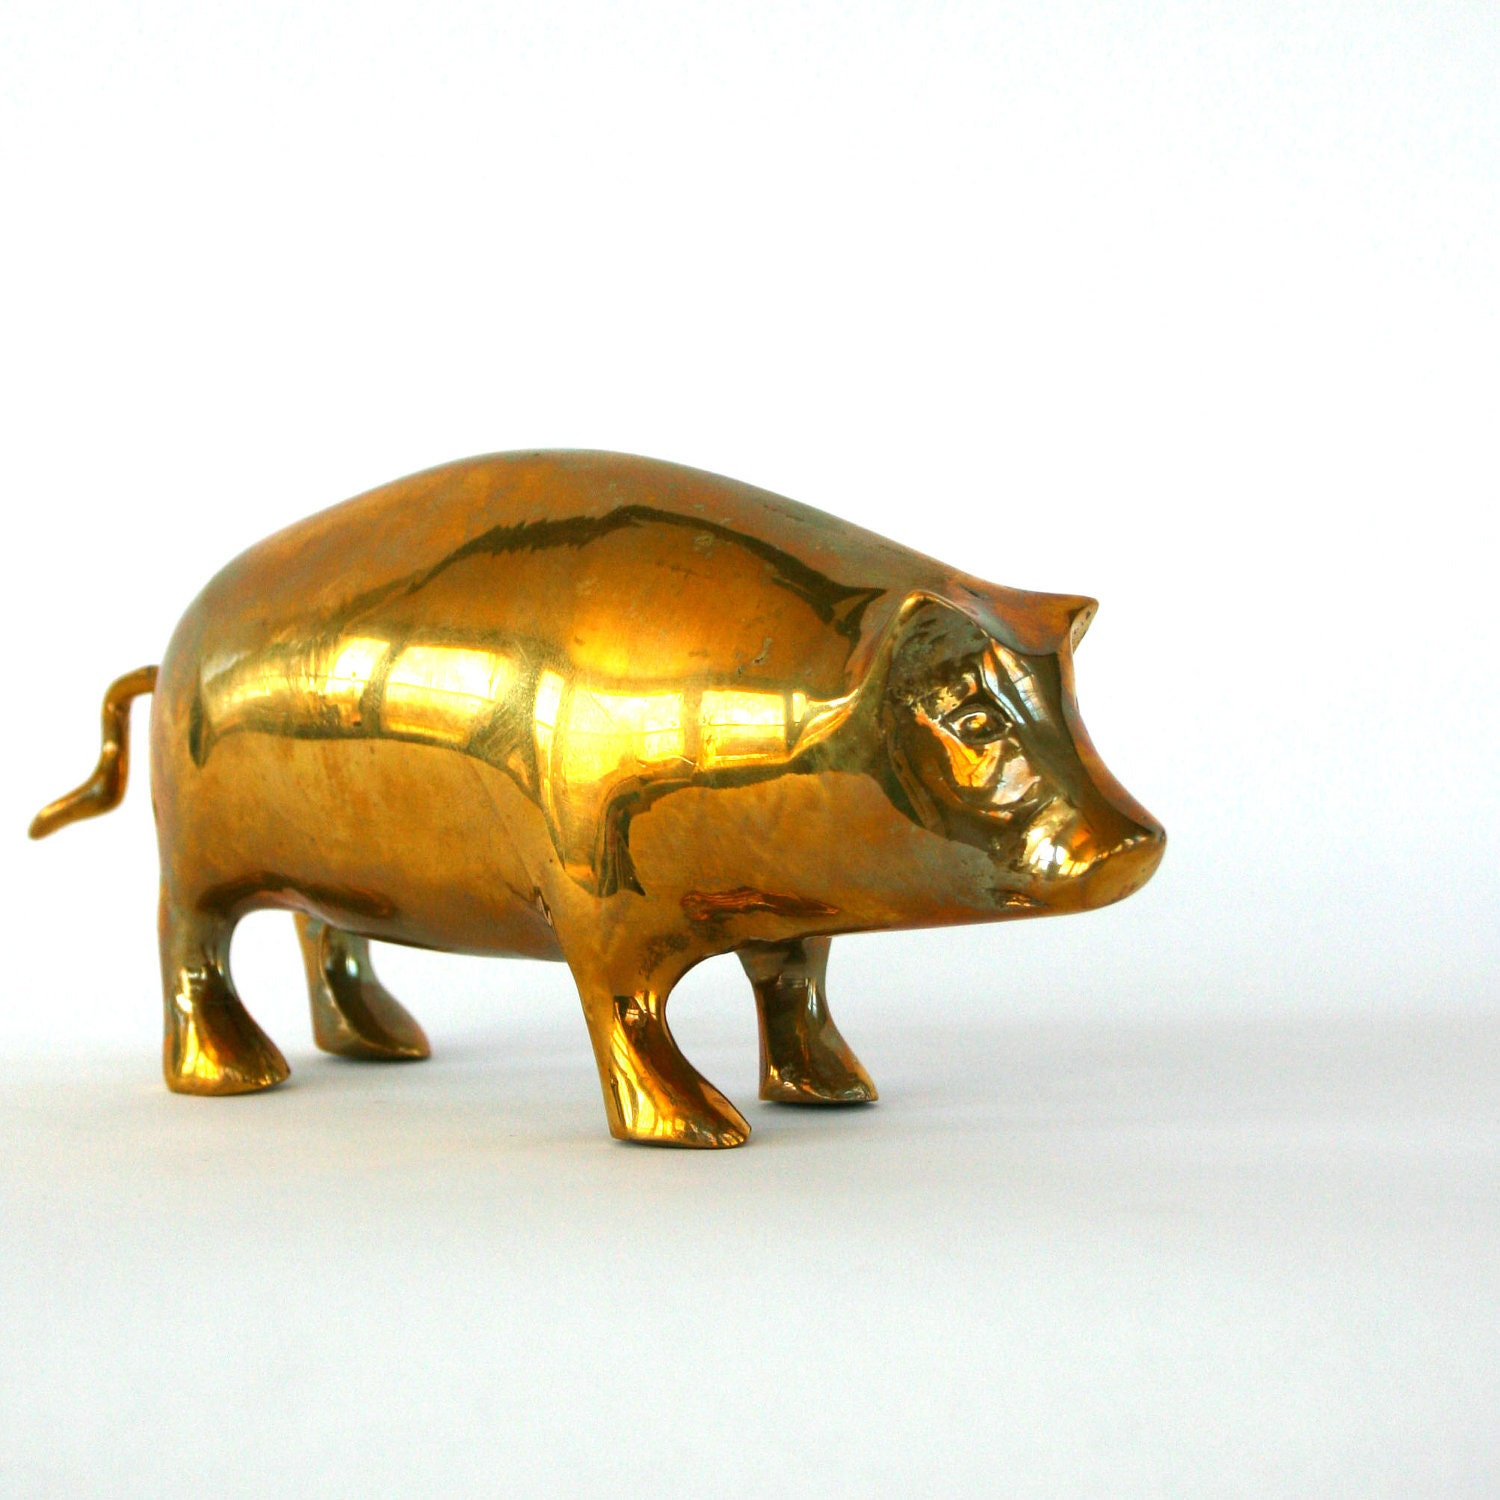 Vintage brass pig figurine gold golden spring by rhapsodyattic